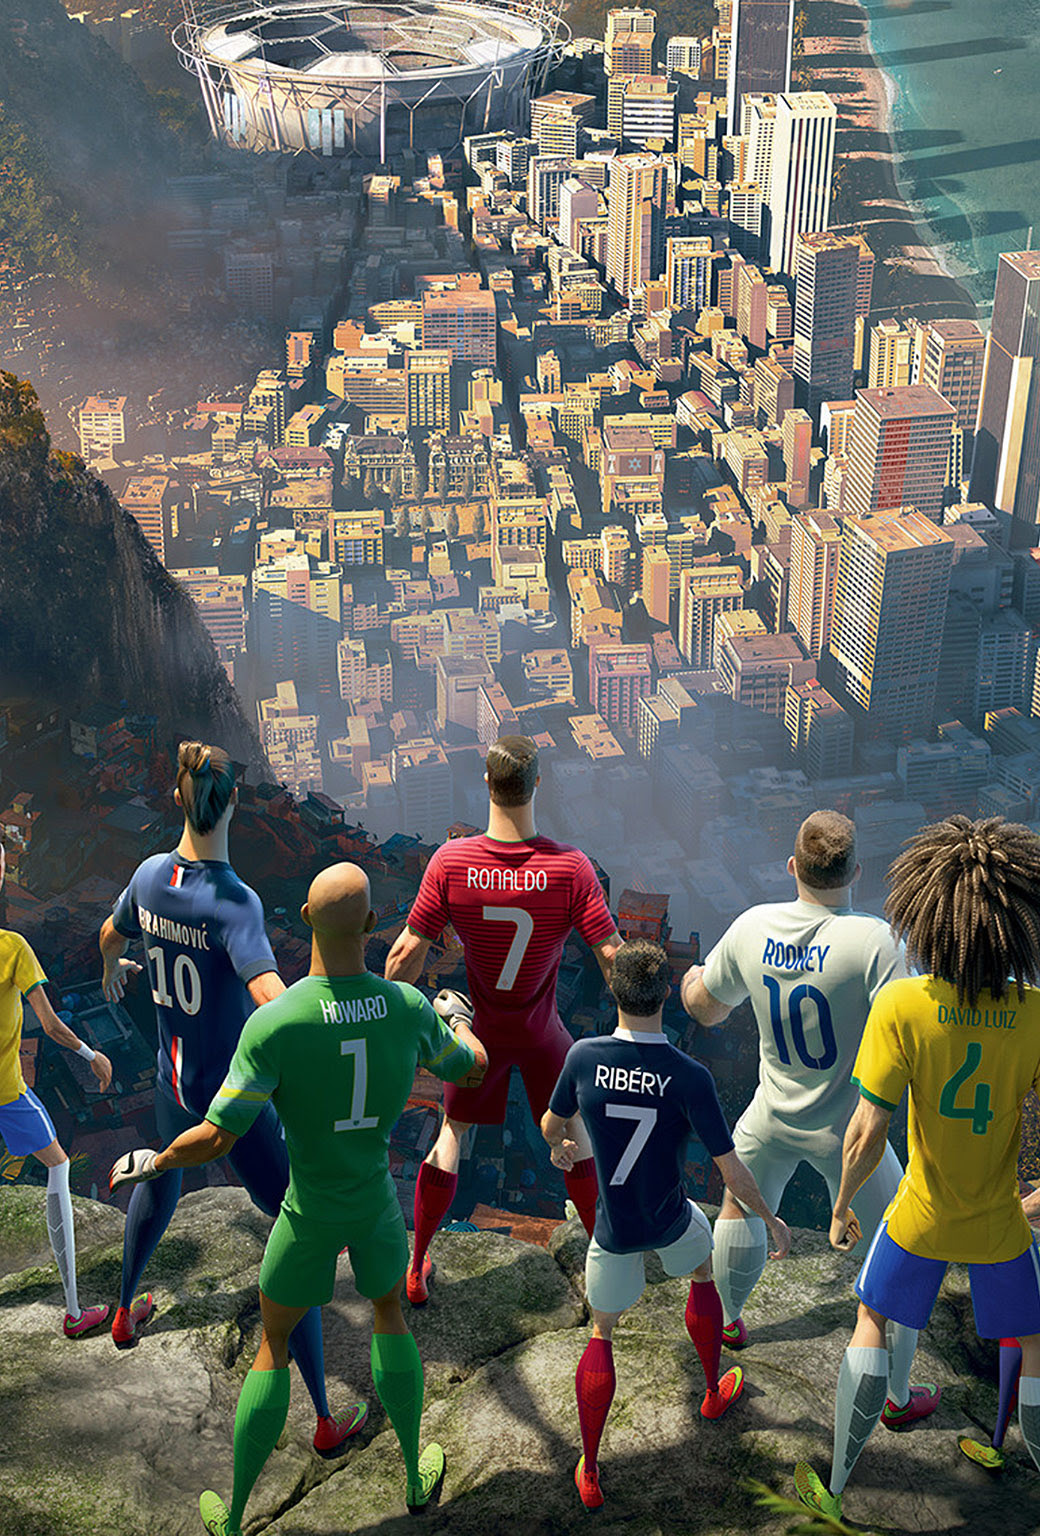 2014 World Cup wallpapers for iPhone and iPad